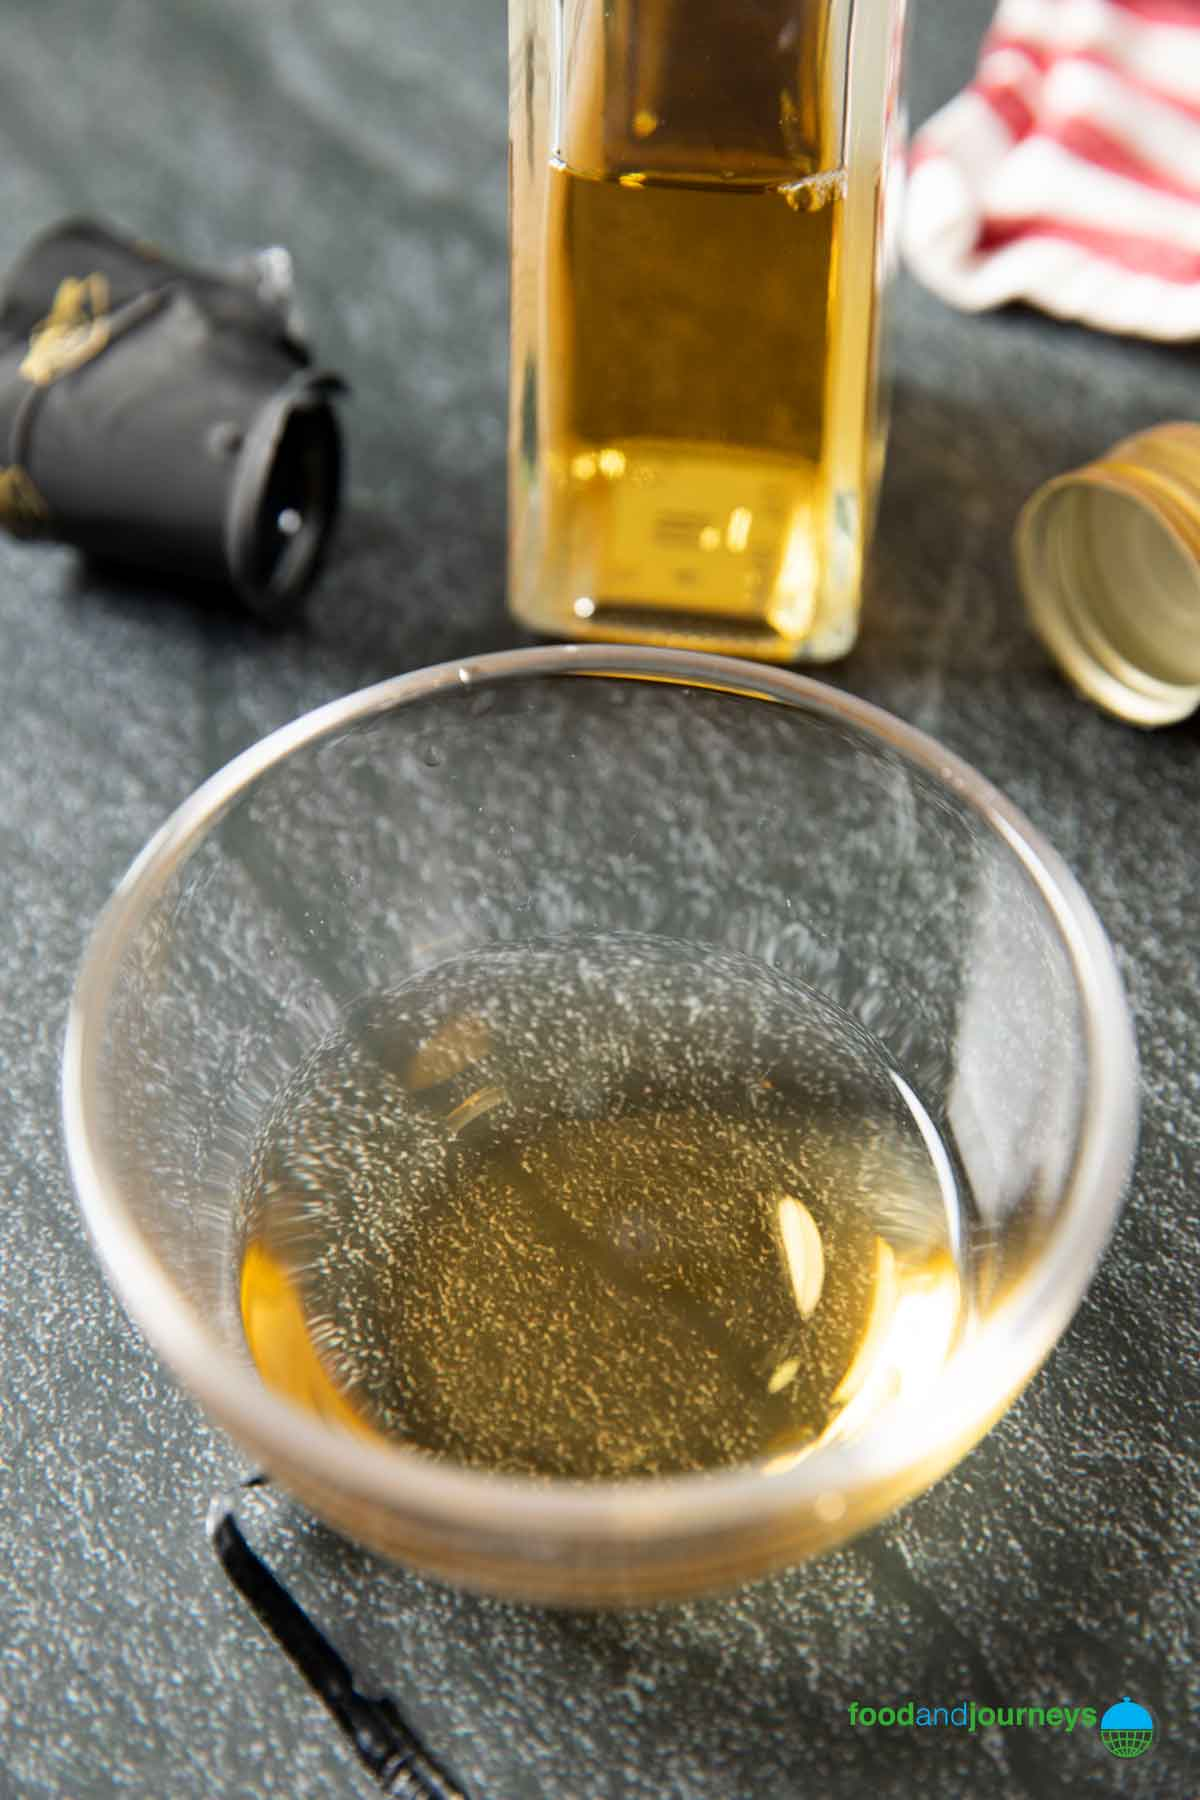 White wine vinegar poured into a small bowl, with a bottle of it in the background.